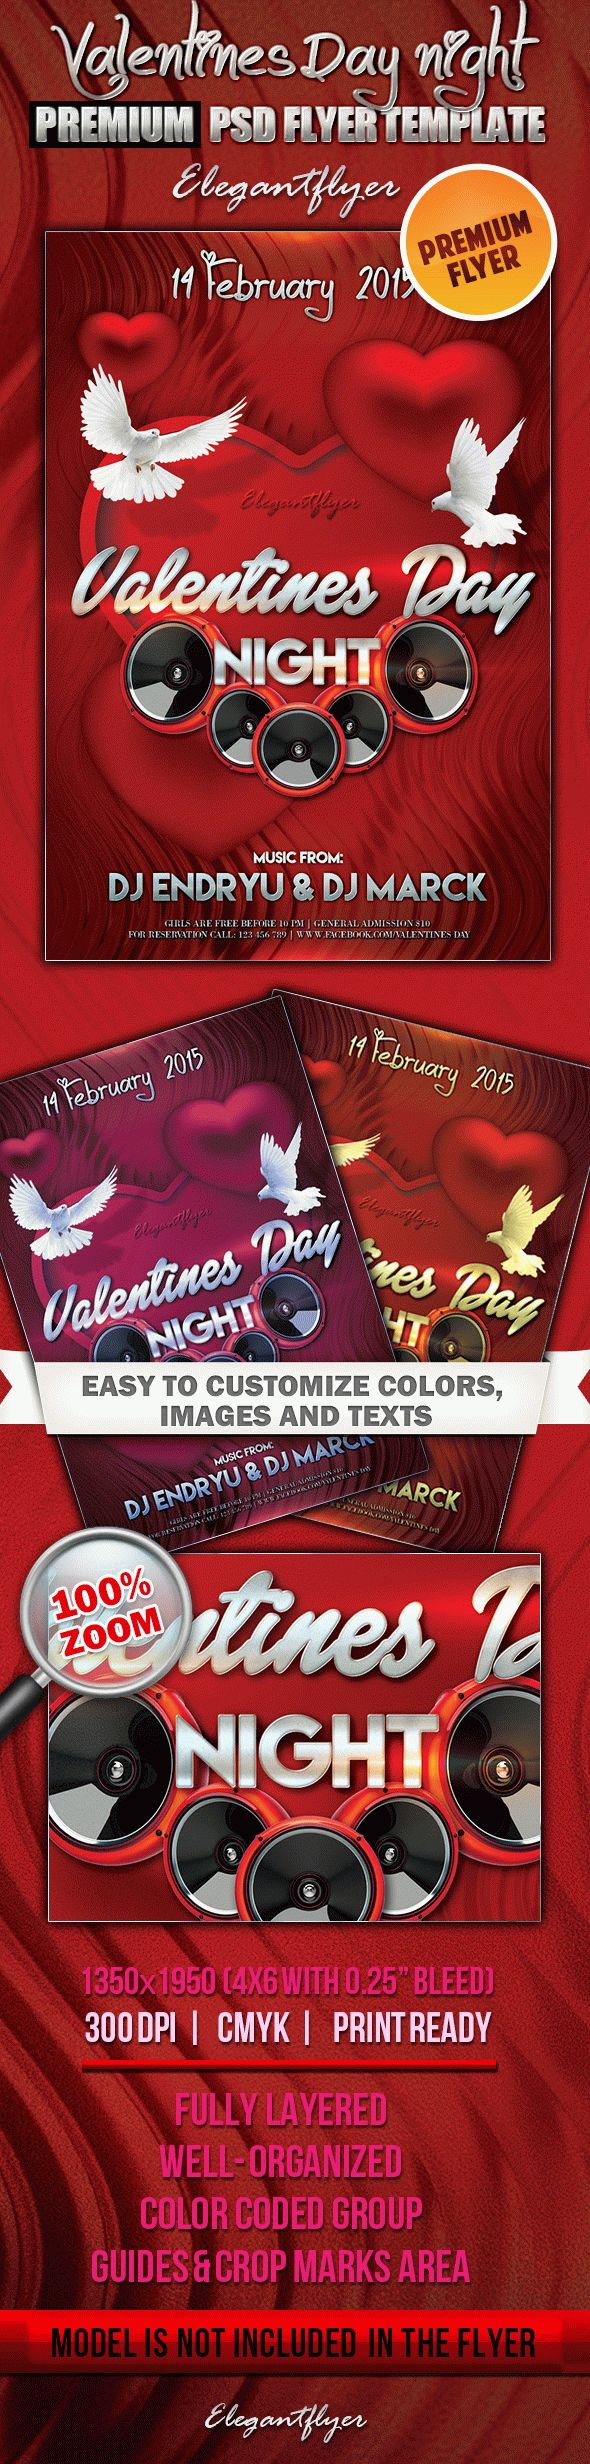 valentine's day memes lord of the rings - funny new years eve party flyer MEMES